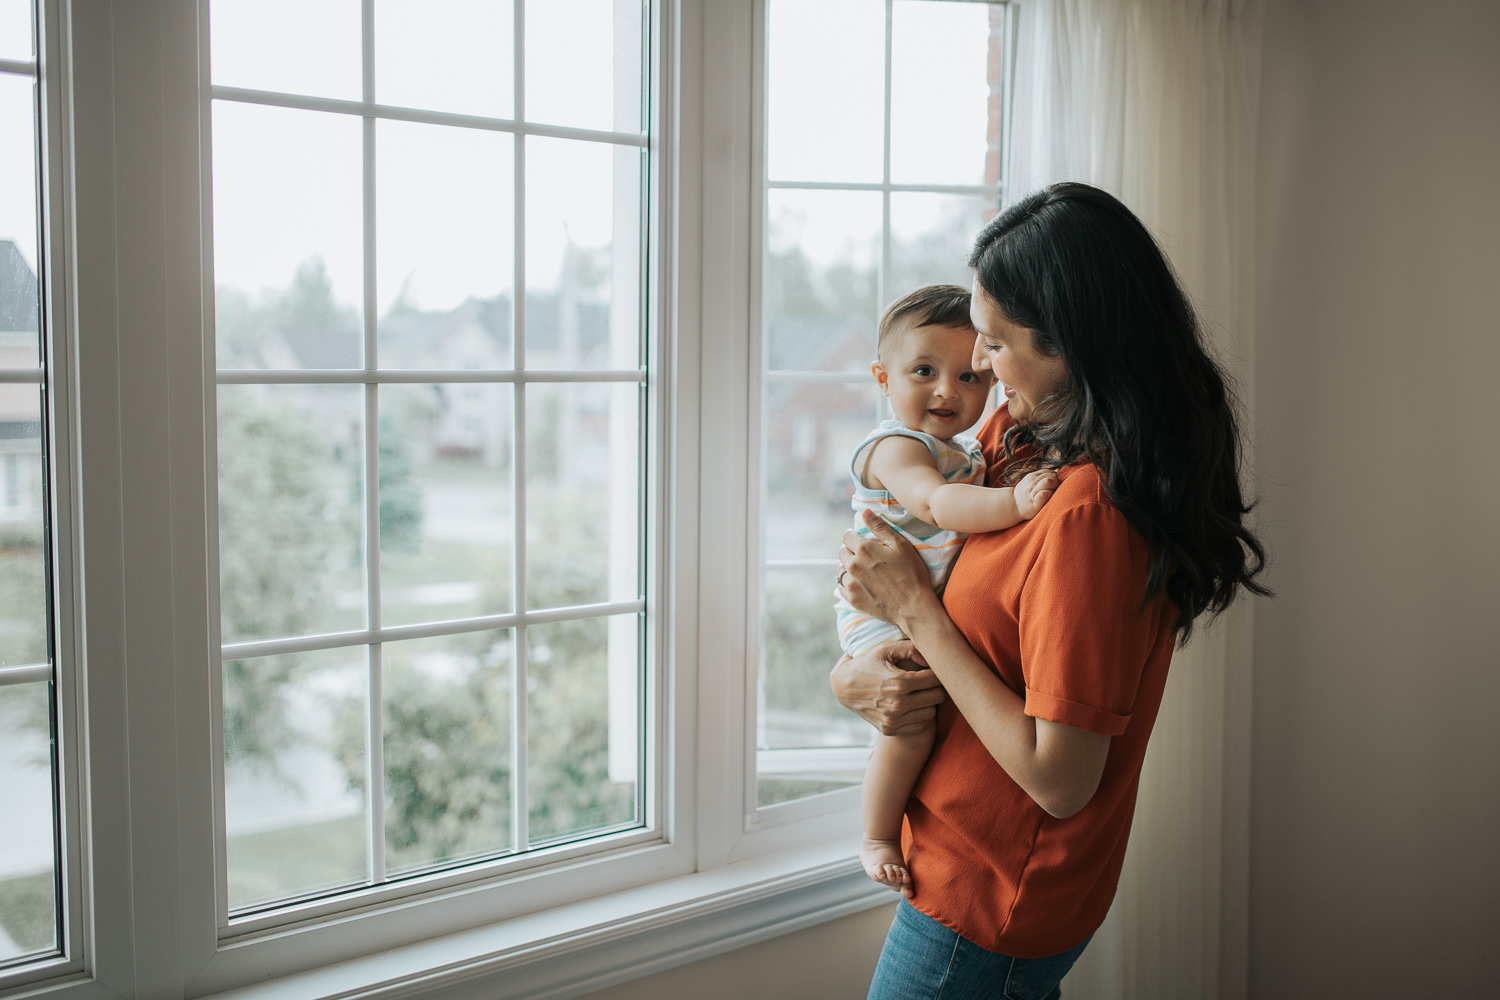 mom standing at window with 8 month old baby boy who is smiling at camera -  Newmarket Lifestyle Photos